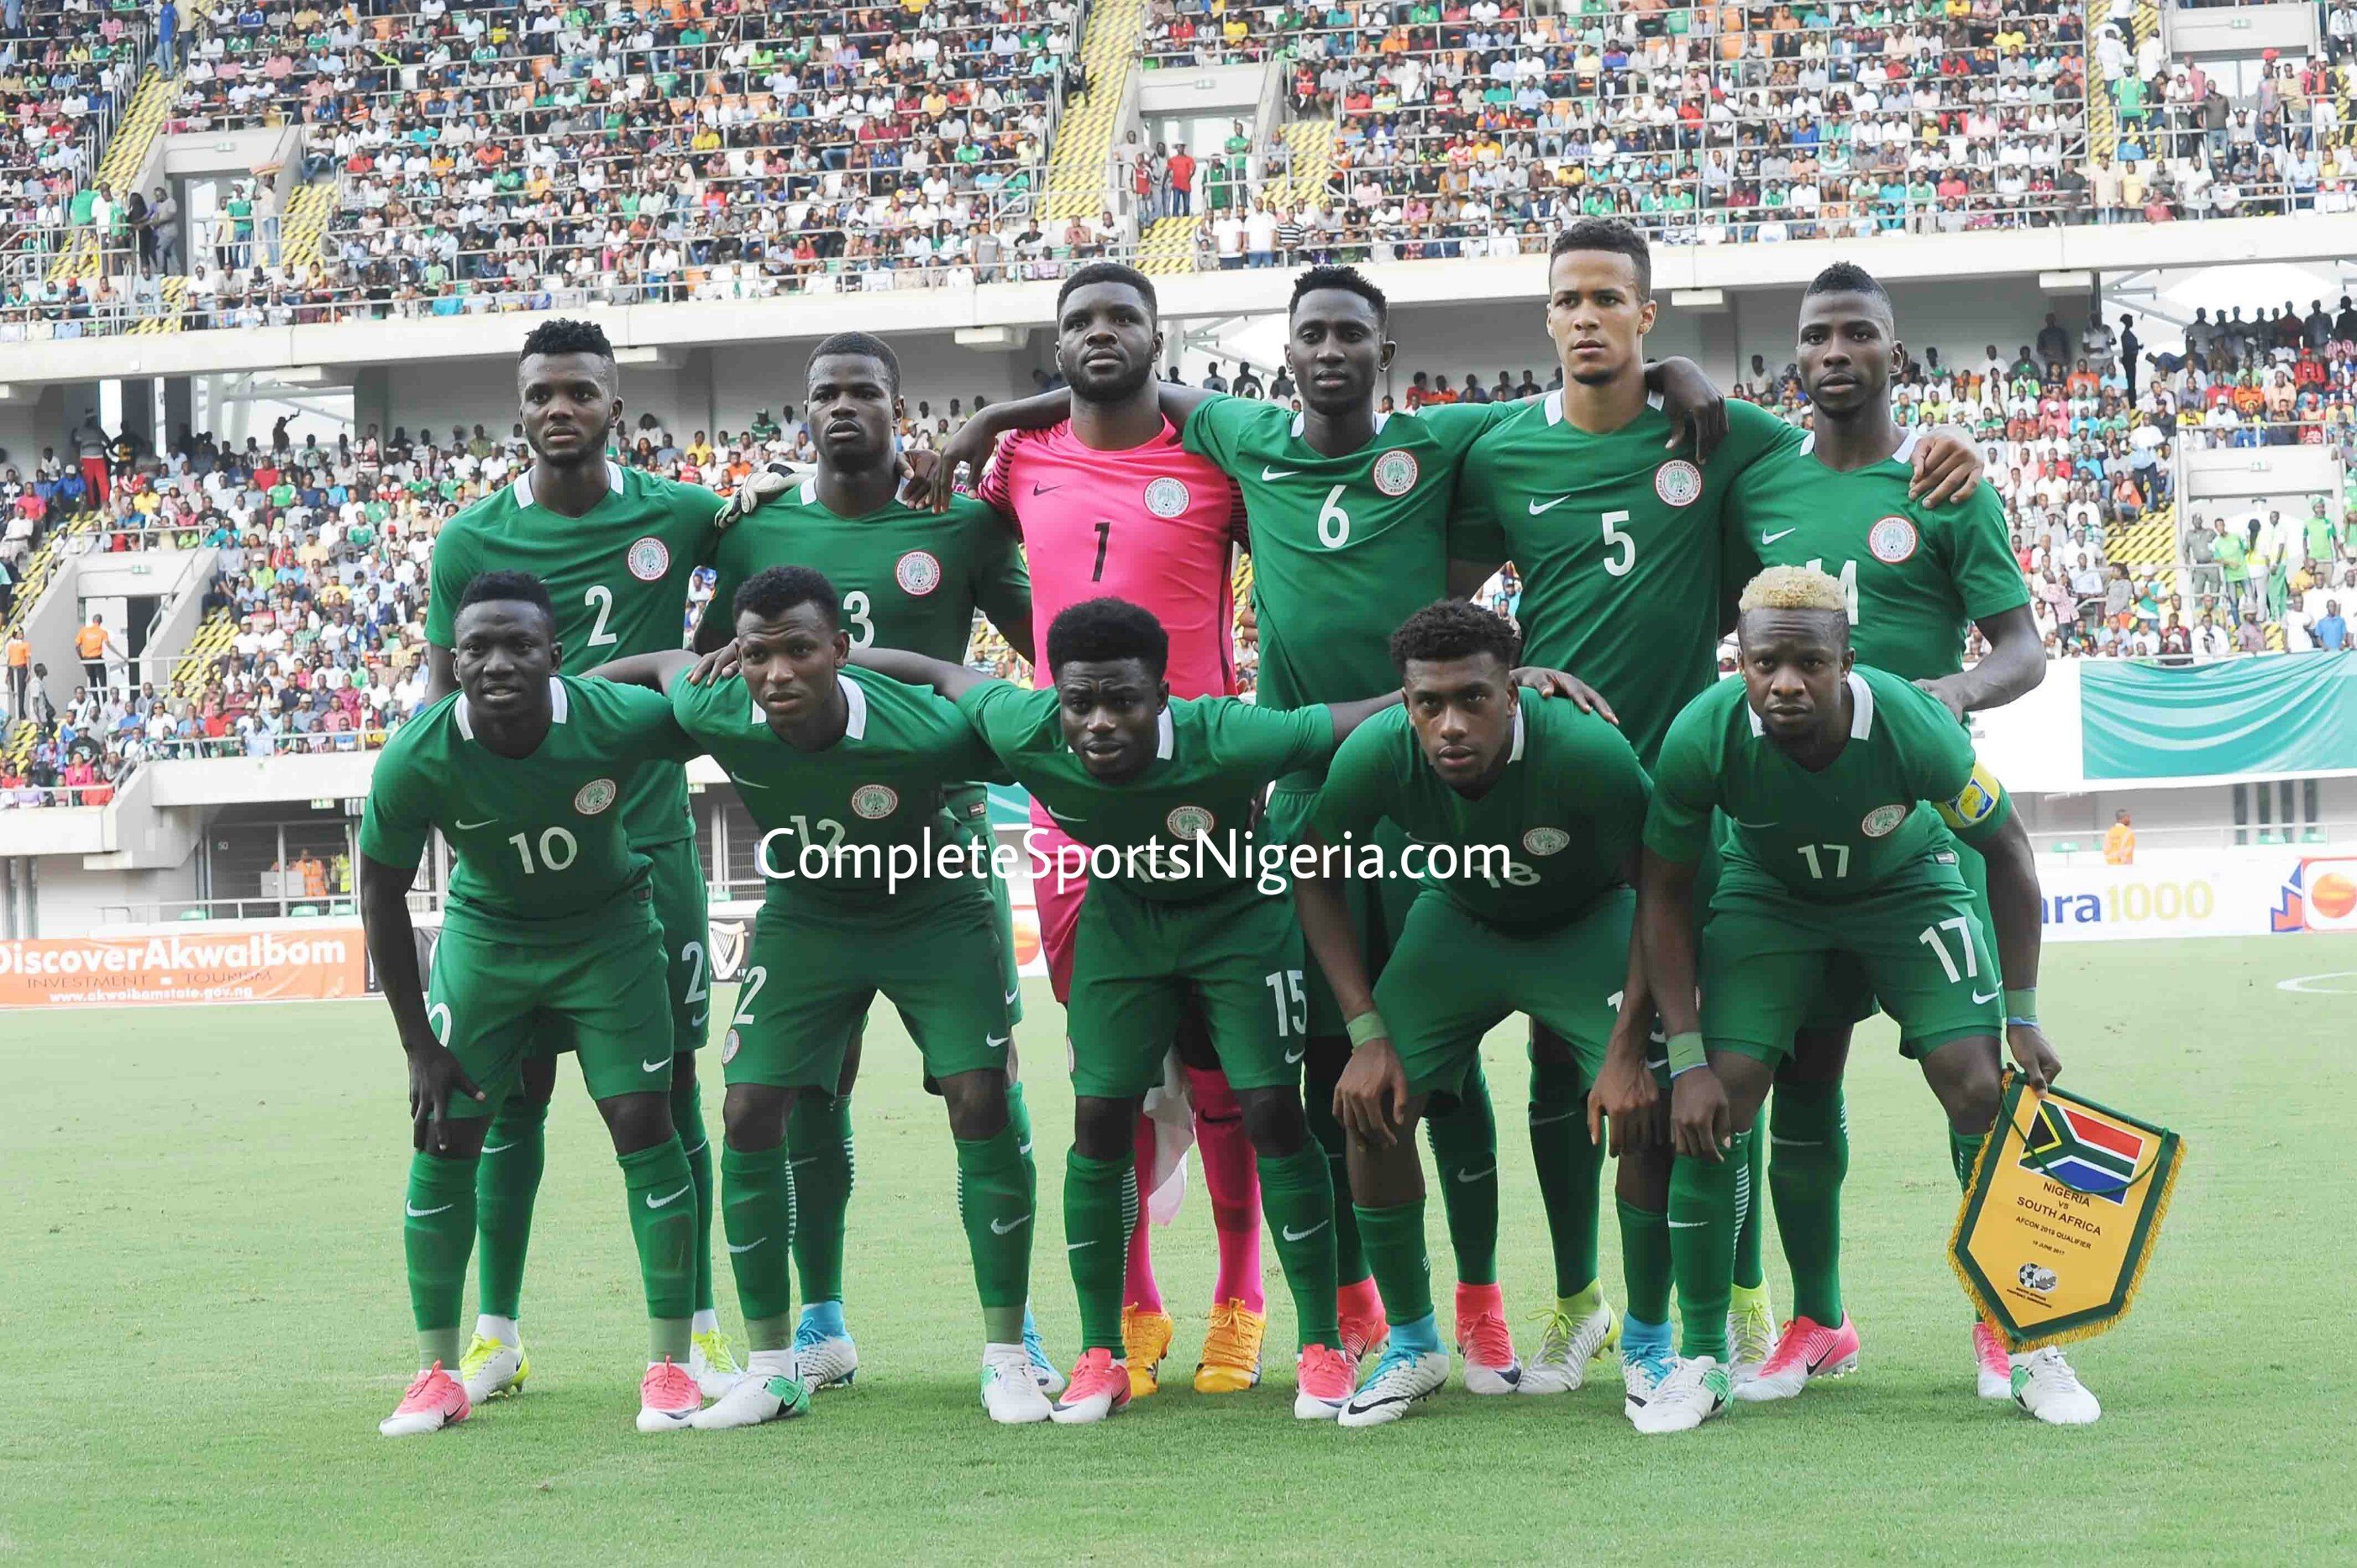 BELOW AVERAGE: How Super Eagles Players Rated Vs South Africa